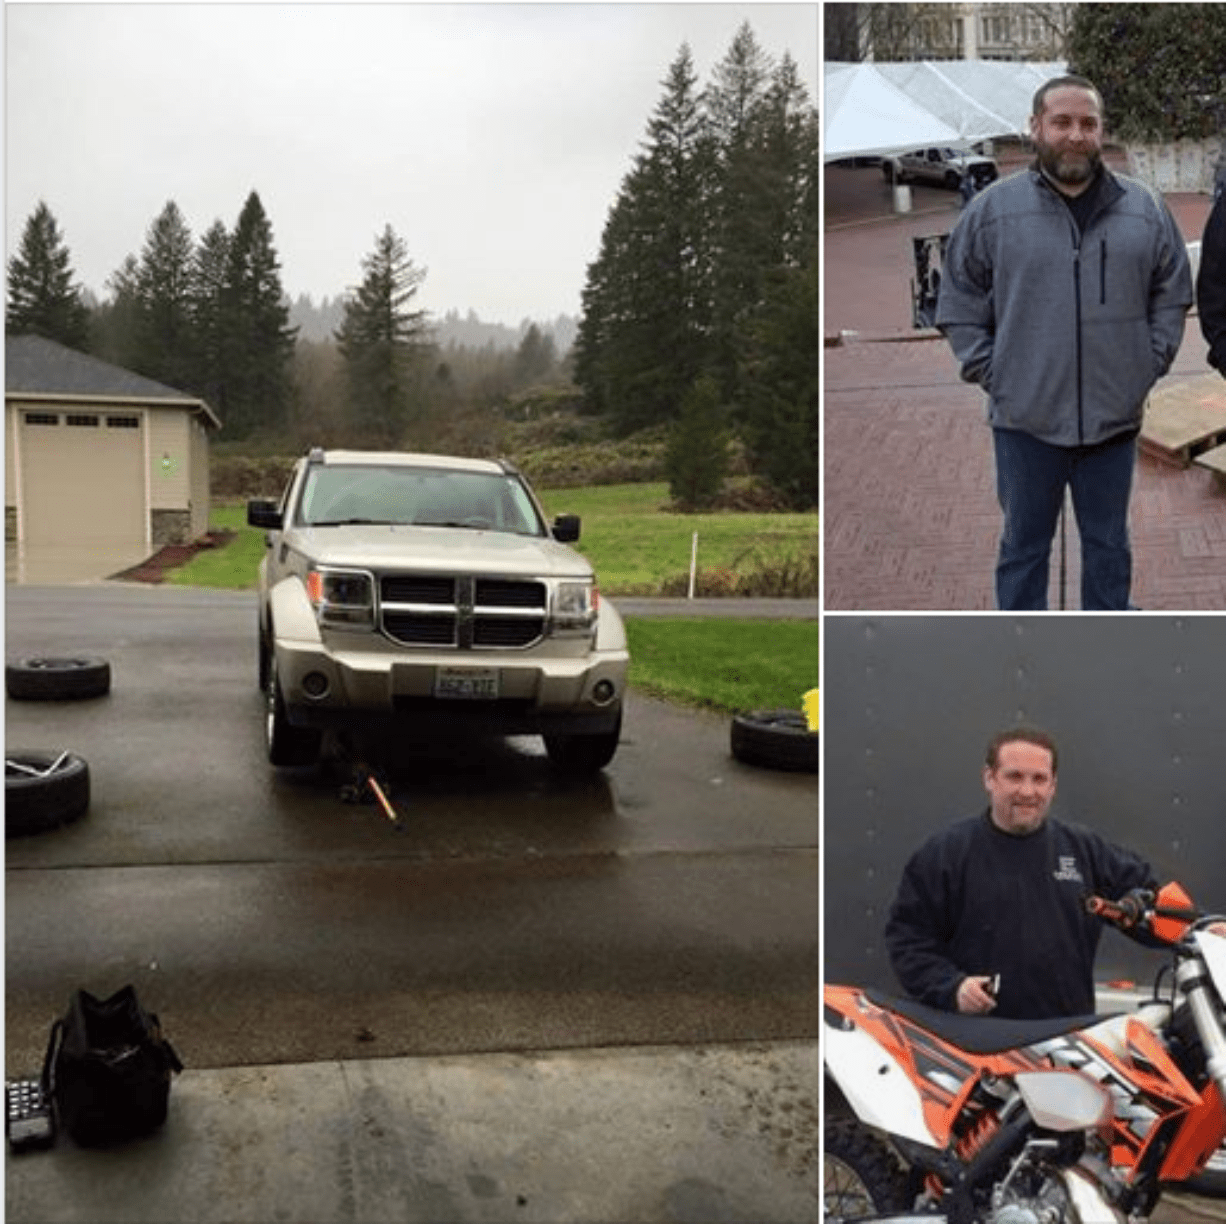 Ryan M. Webb has been missing since May 7, according to Camas police.